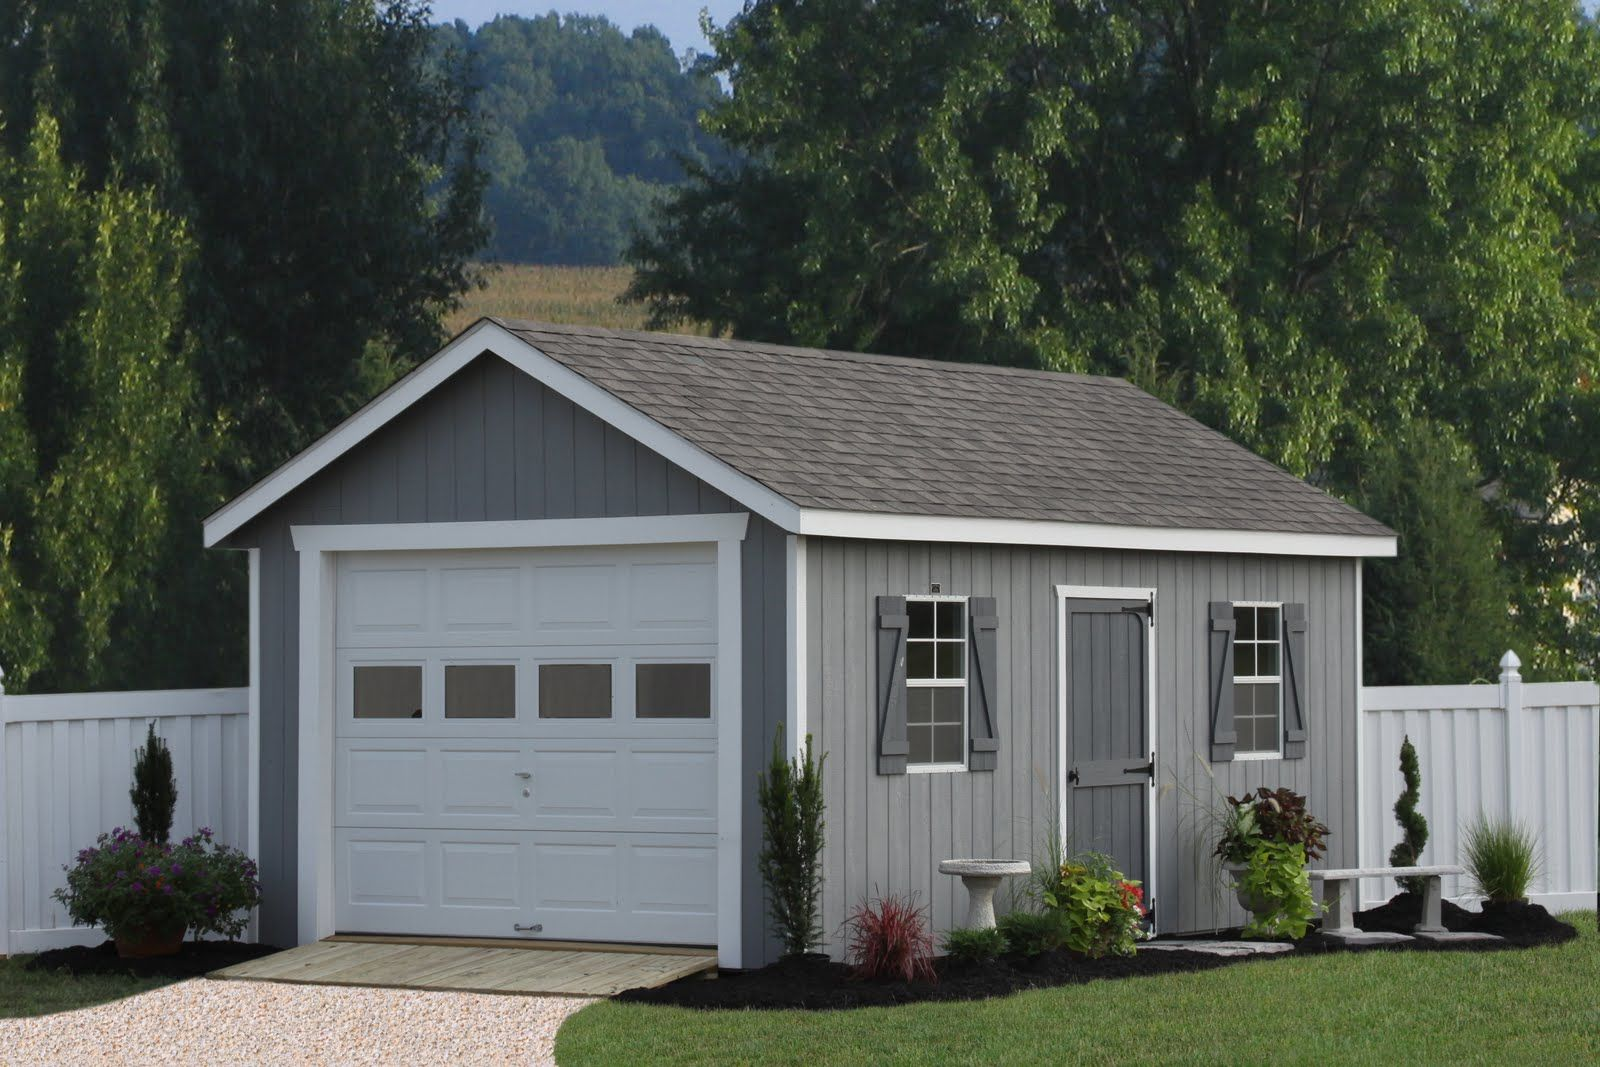 Add on garage plans 12x20 classic one car garage for 1 5 car garage